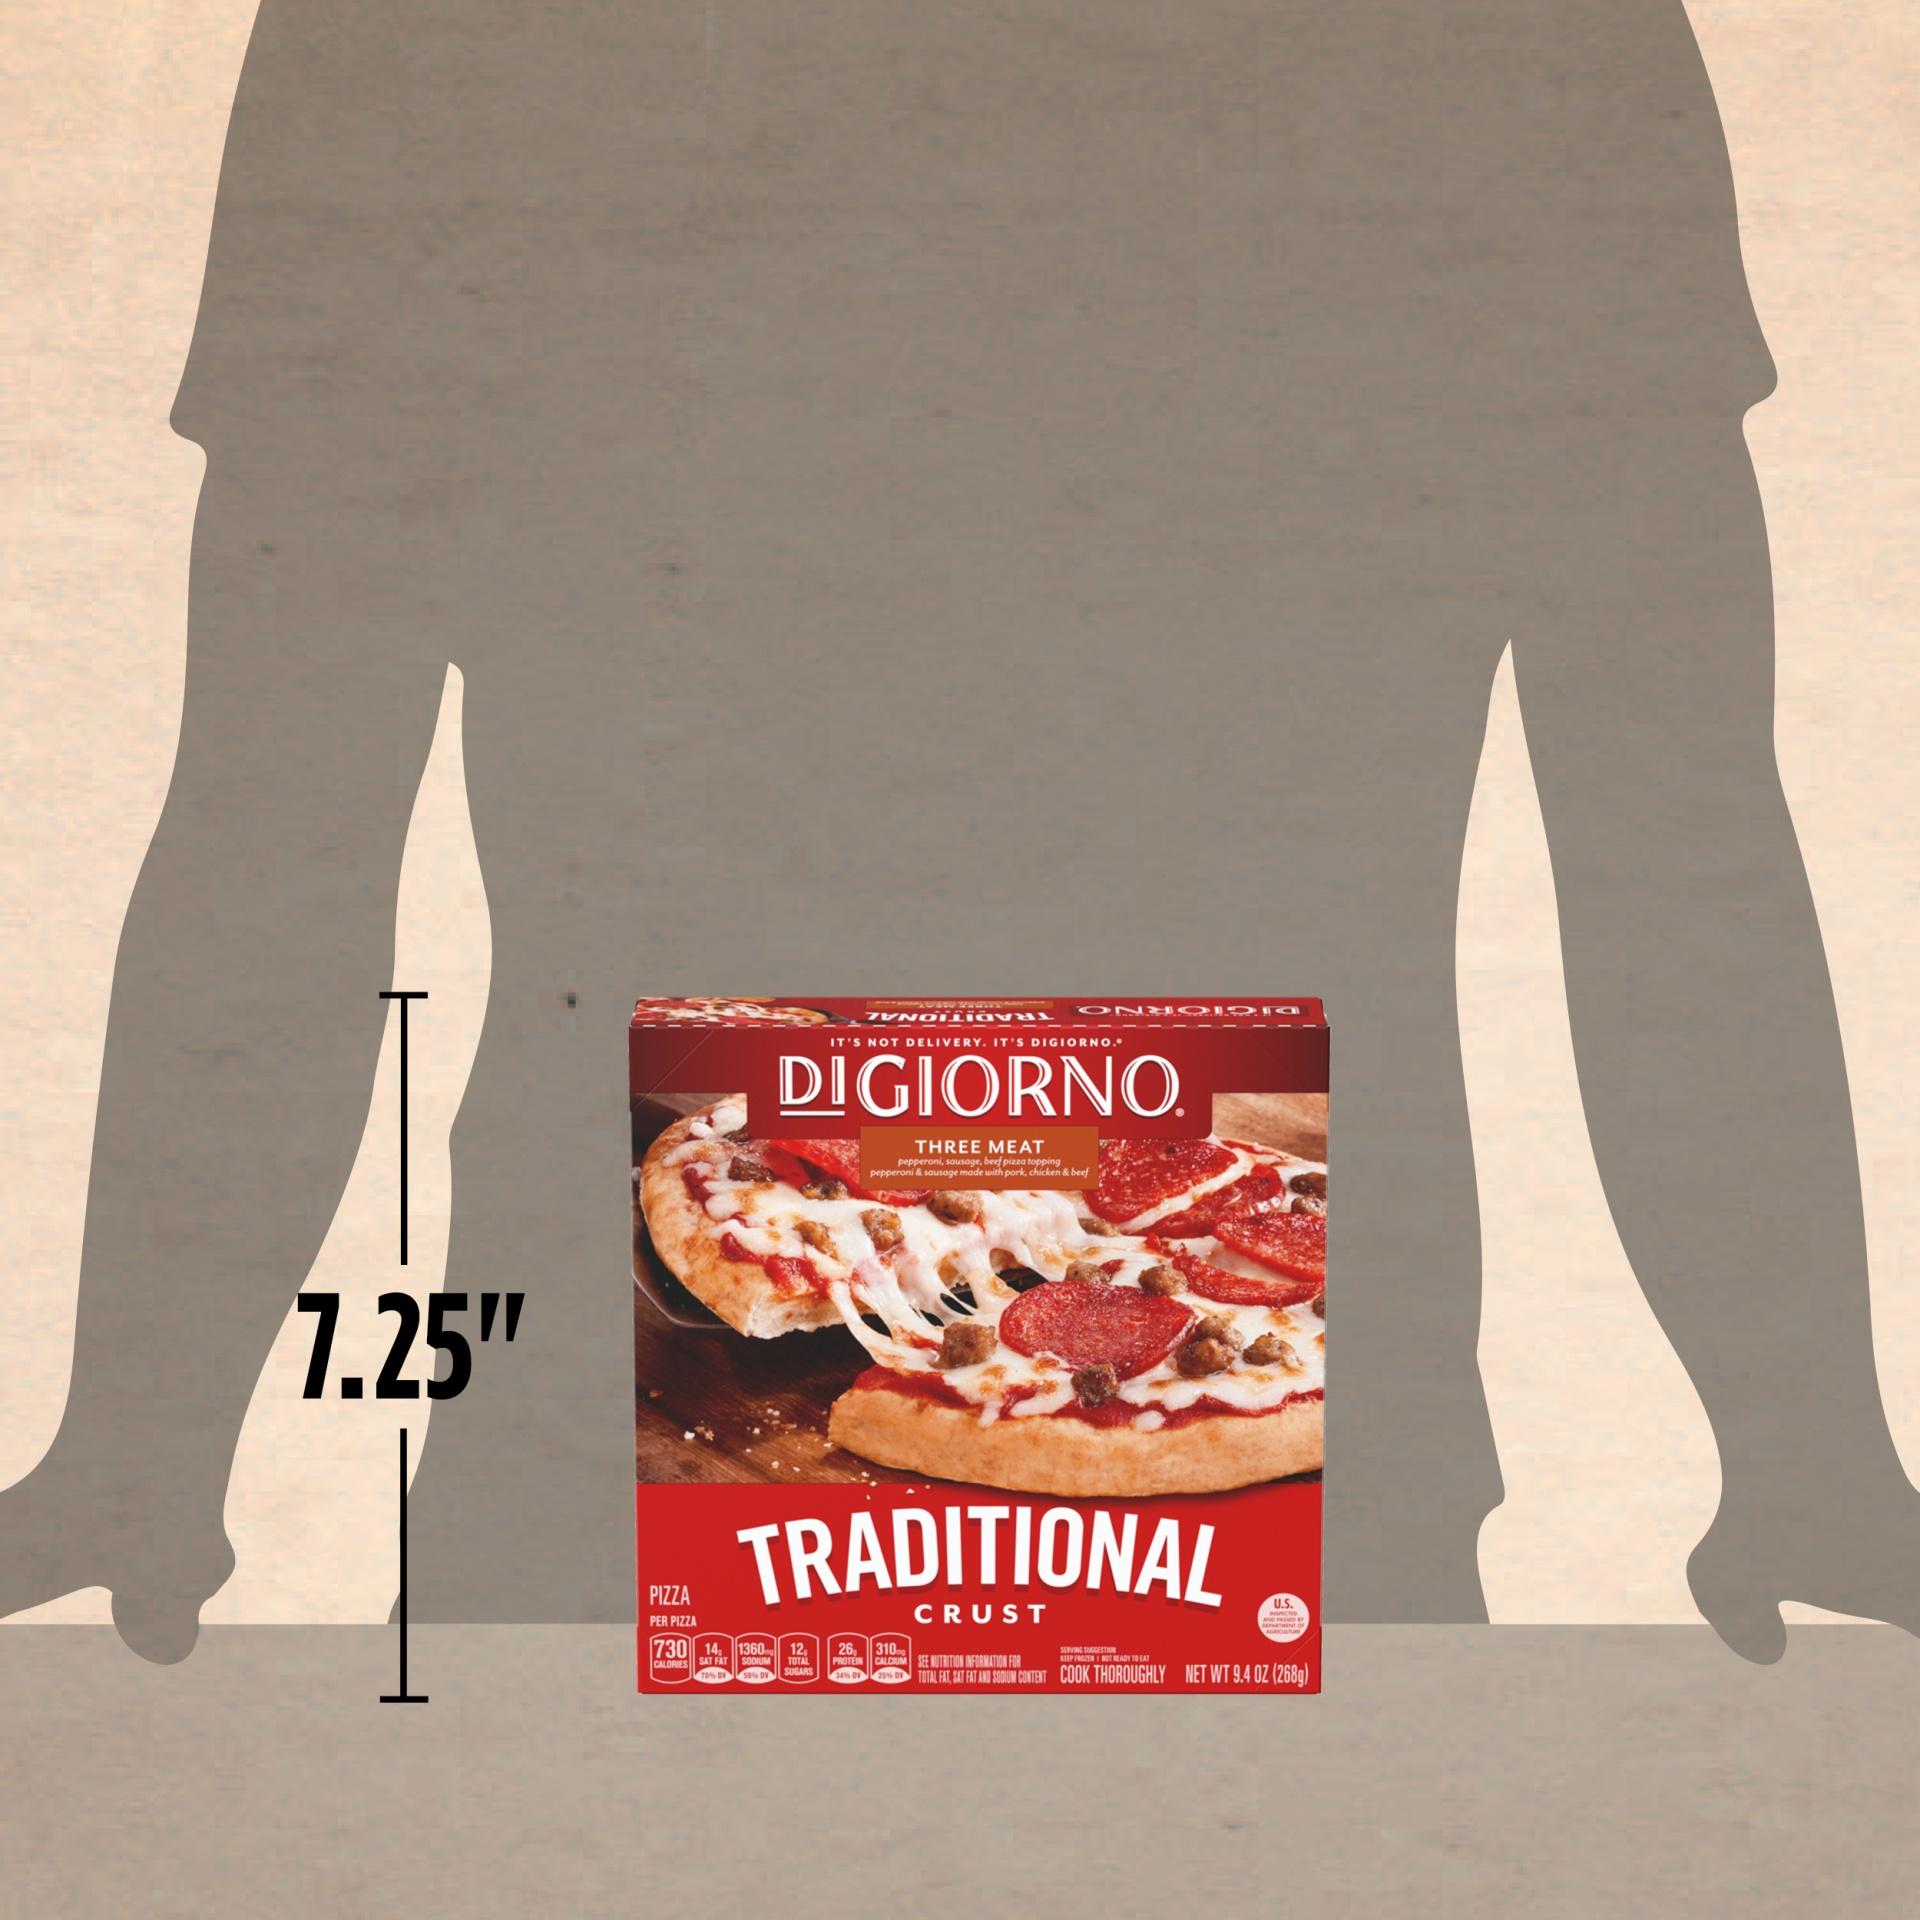 slide 10 of 13, DiGiorno Three Meat Traditional Crust Pizza,